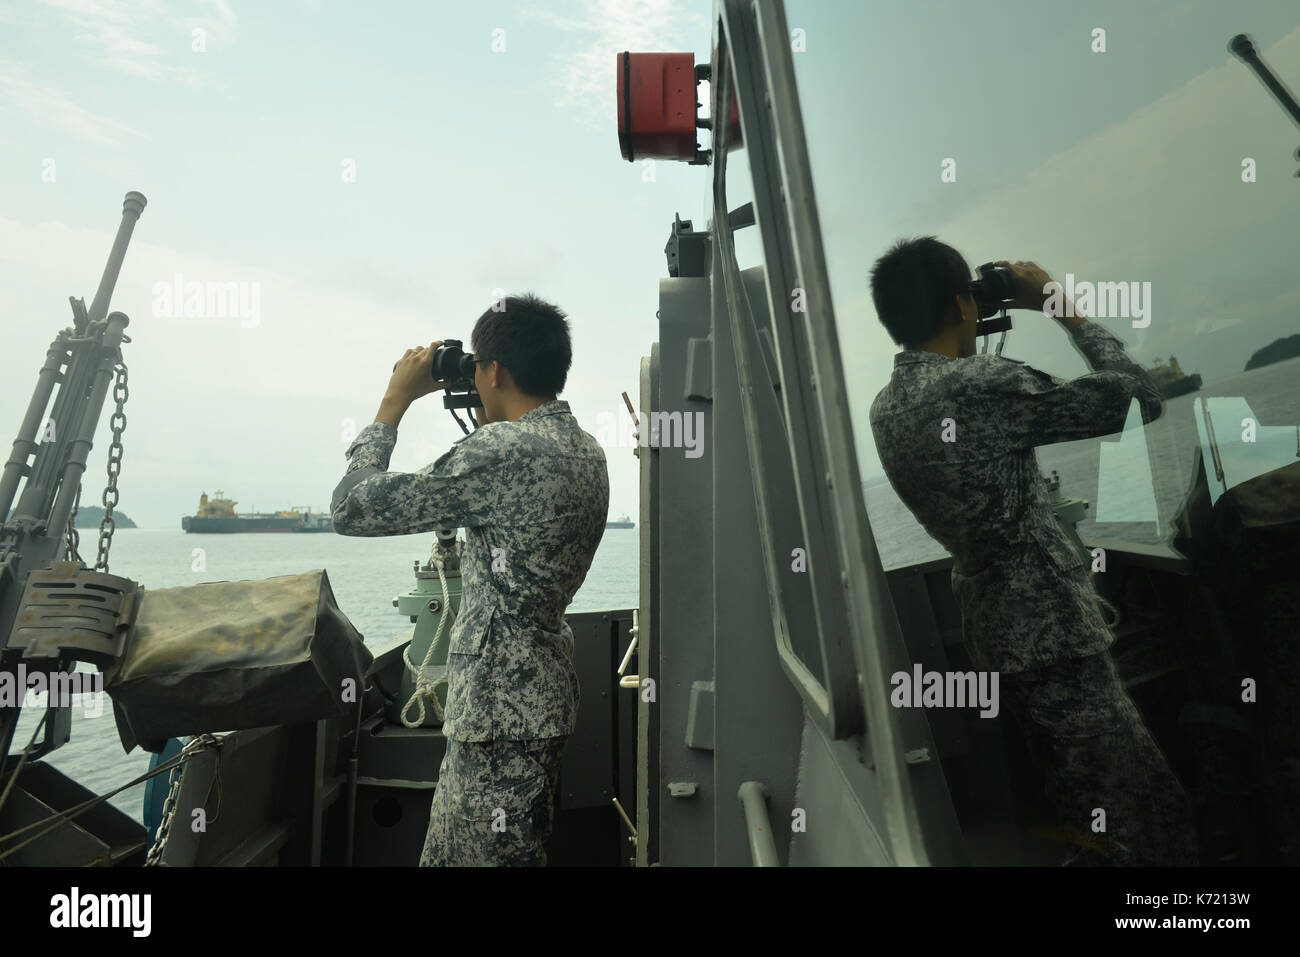 Singapore. 14th Sep, 2017. A sailor of Singapore Navy looks for the missing sailors of the collision accident in the west part of Singapore Strait on Sept. 14, 2017. The Maritime and Port Authority of Singapore (MPA) announced Wednesday evening that divers have recovered two bodies of missing crew members from a dredger which had collided earlier in the day with a tanker in Singapore's territorial waters. Credit: Then Chih Wey/Xinhua/Alamy Live News - Stock Image